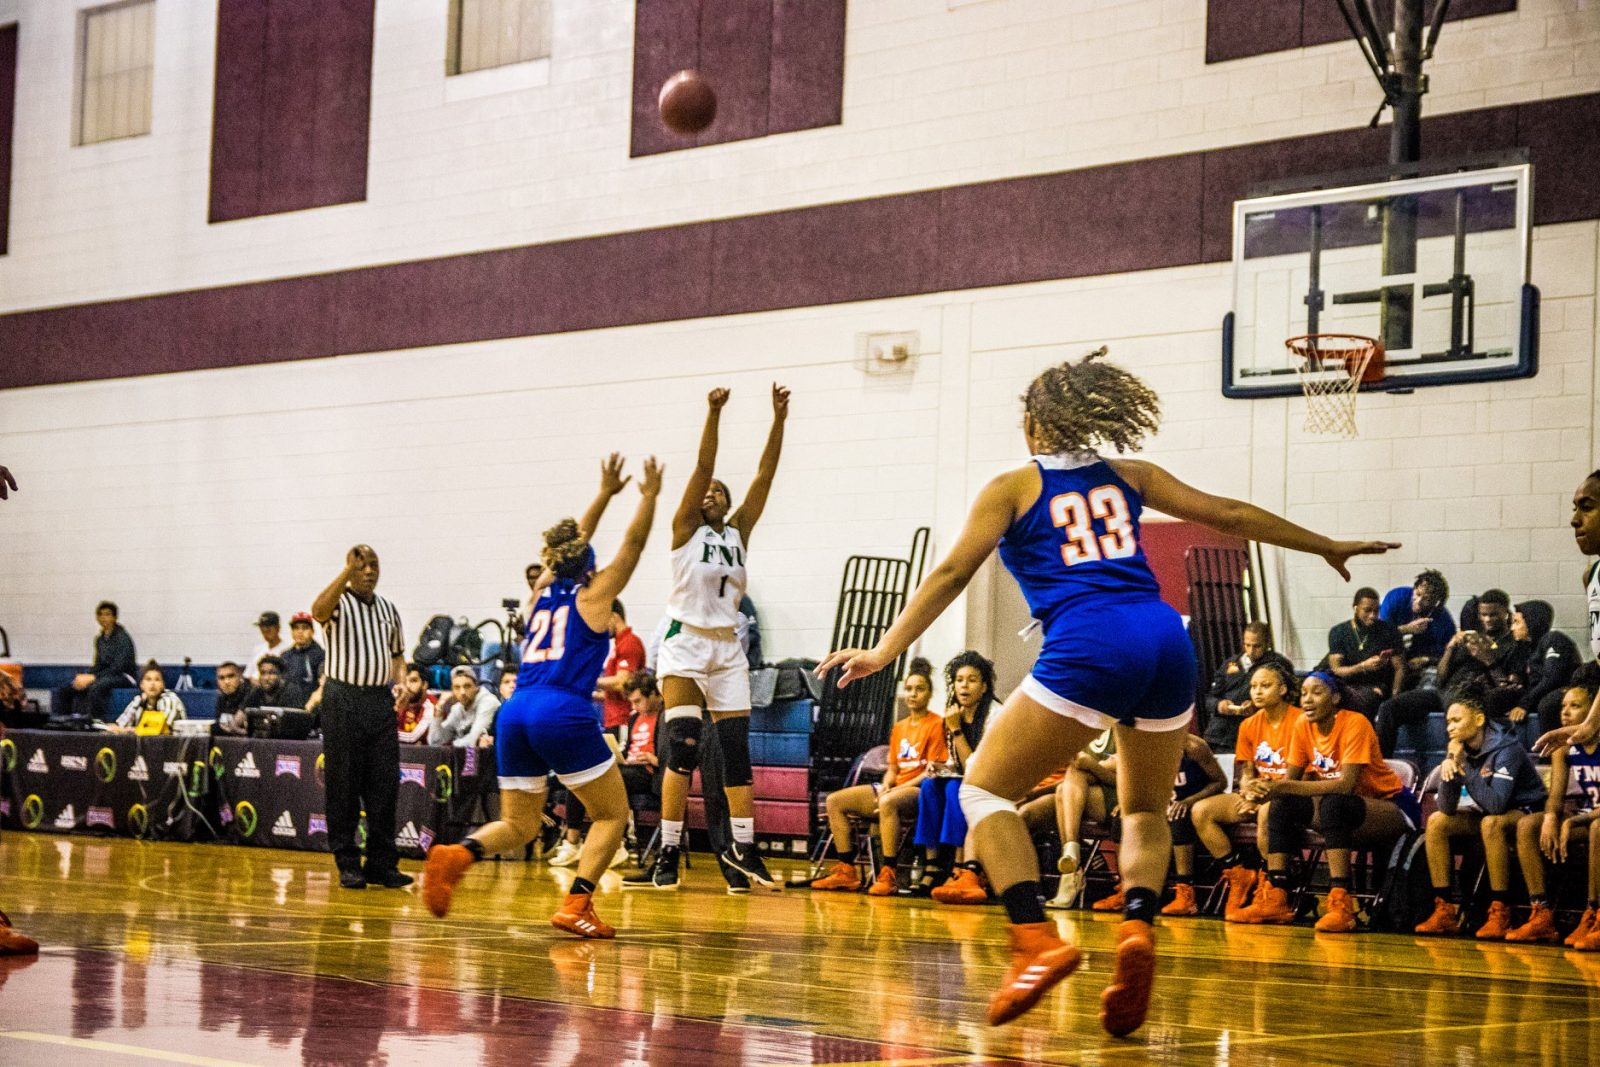 women's basketball player Ashley Williams throwing the ball in the game